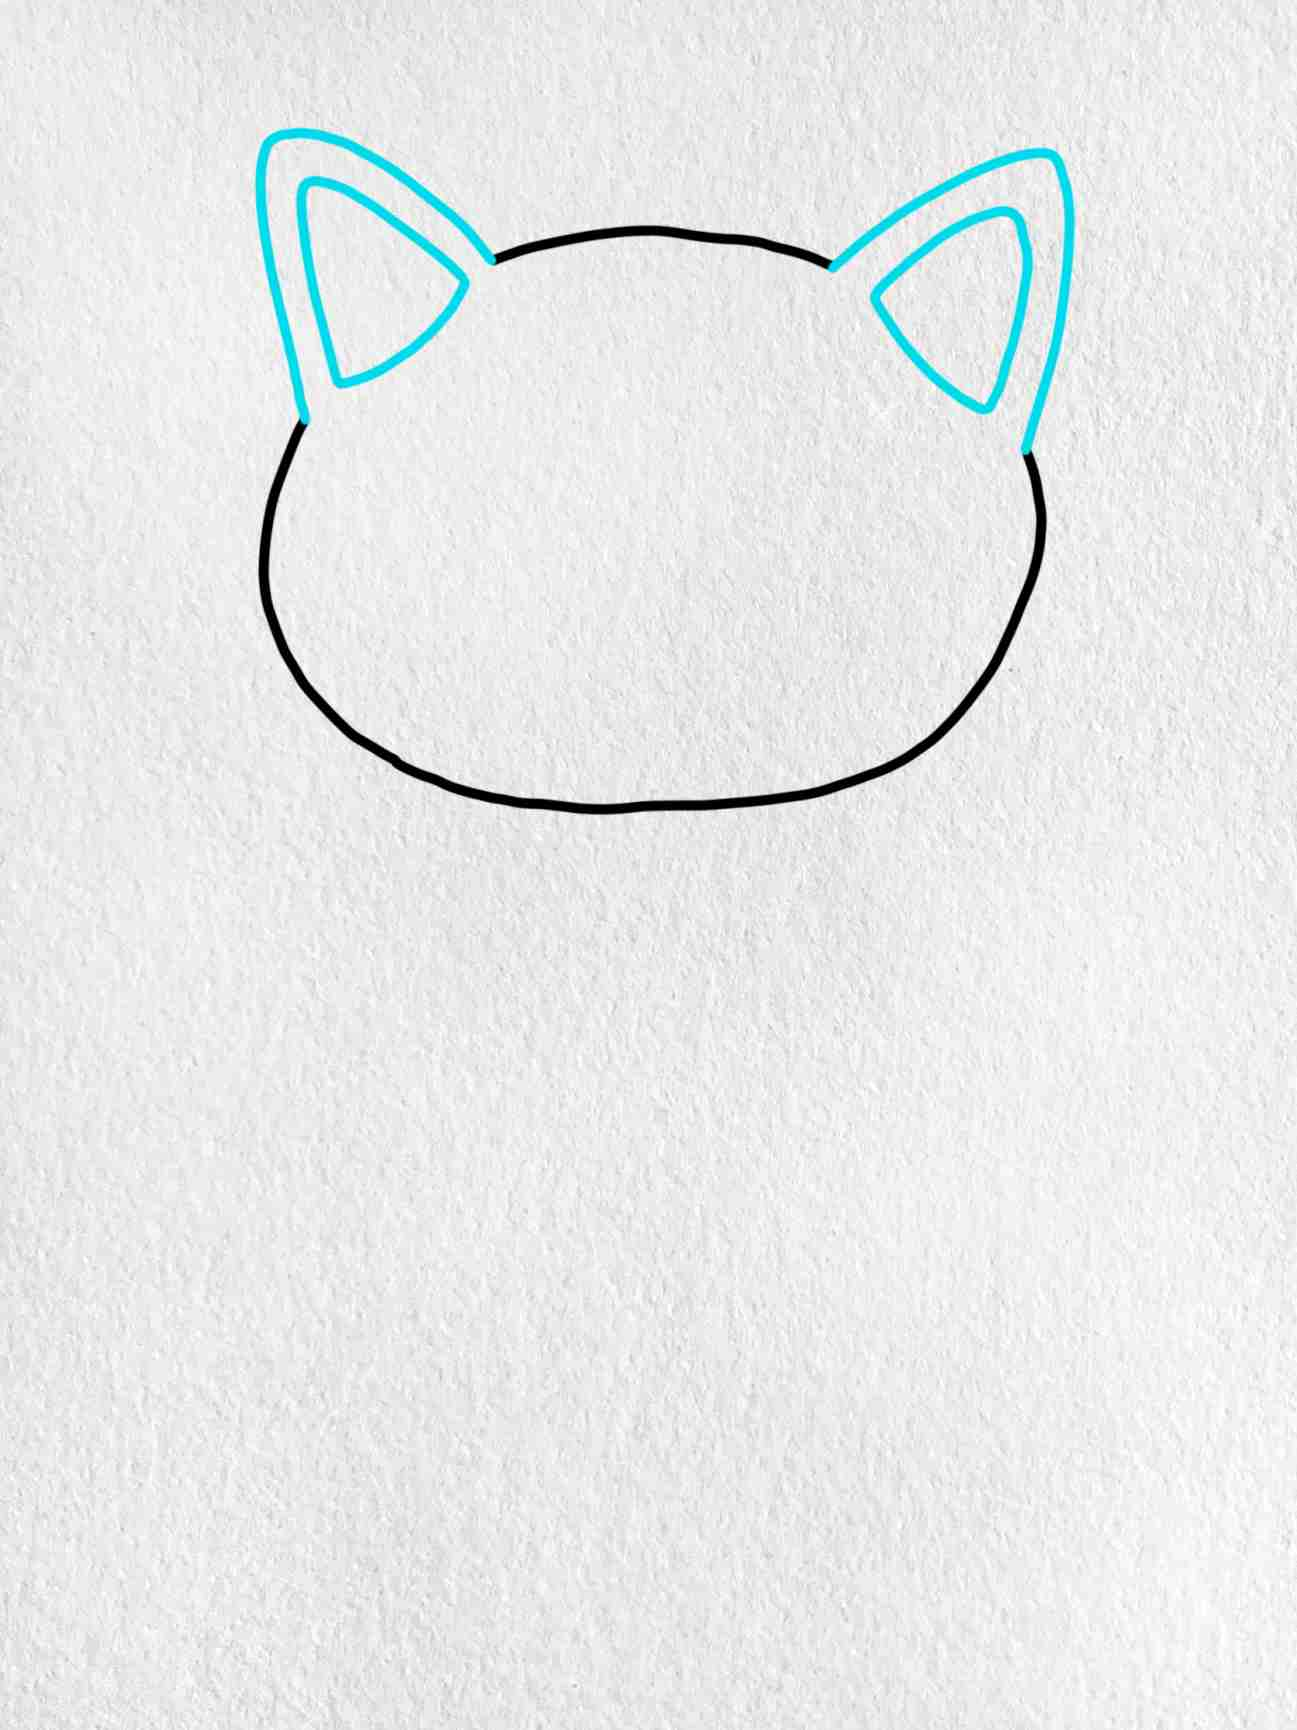 Easy Cat Drawing: Step 2